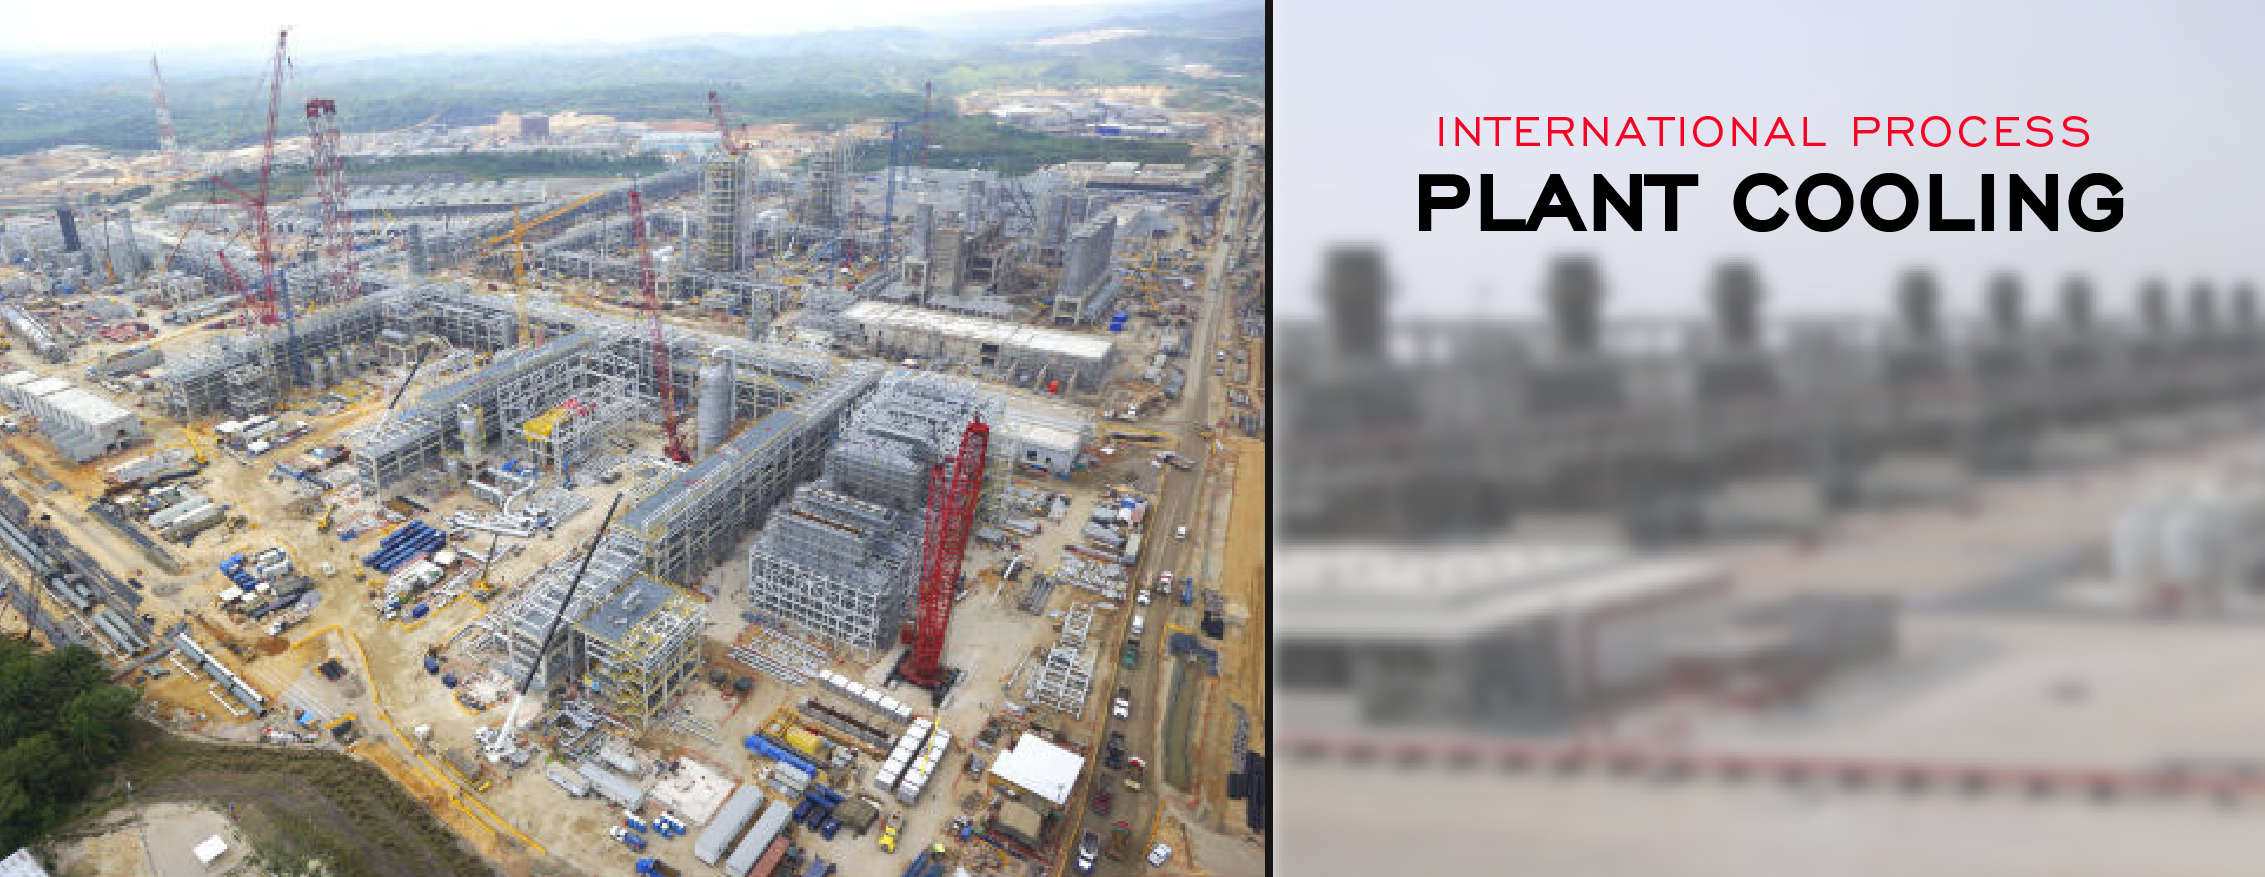 Project International Process Plant Cooling 01